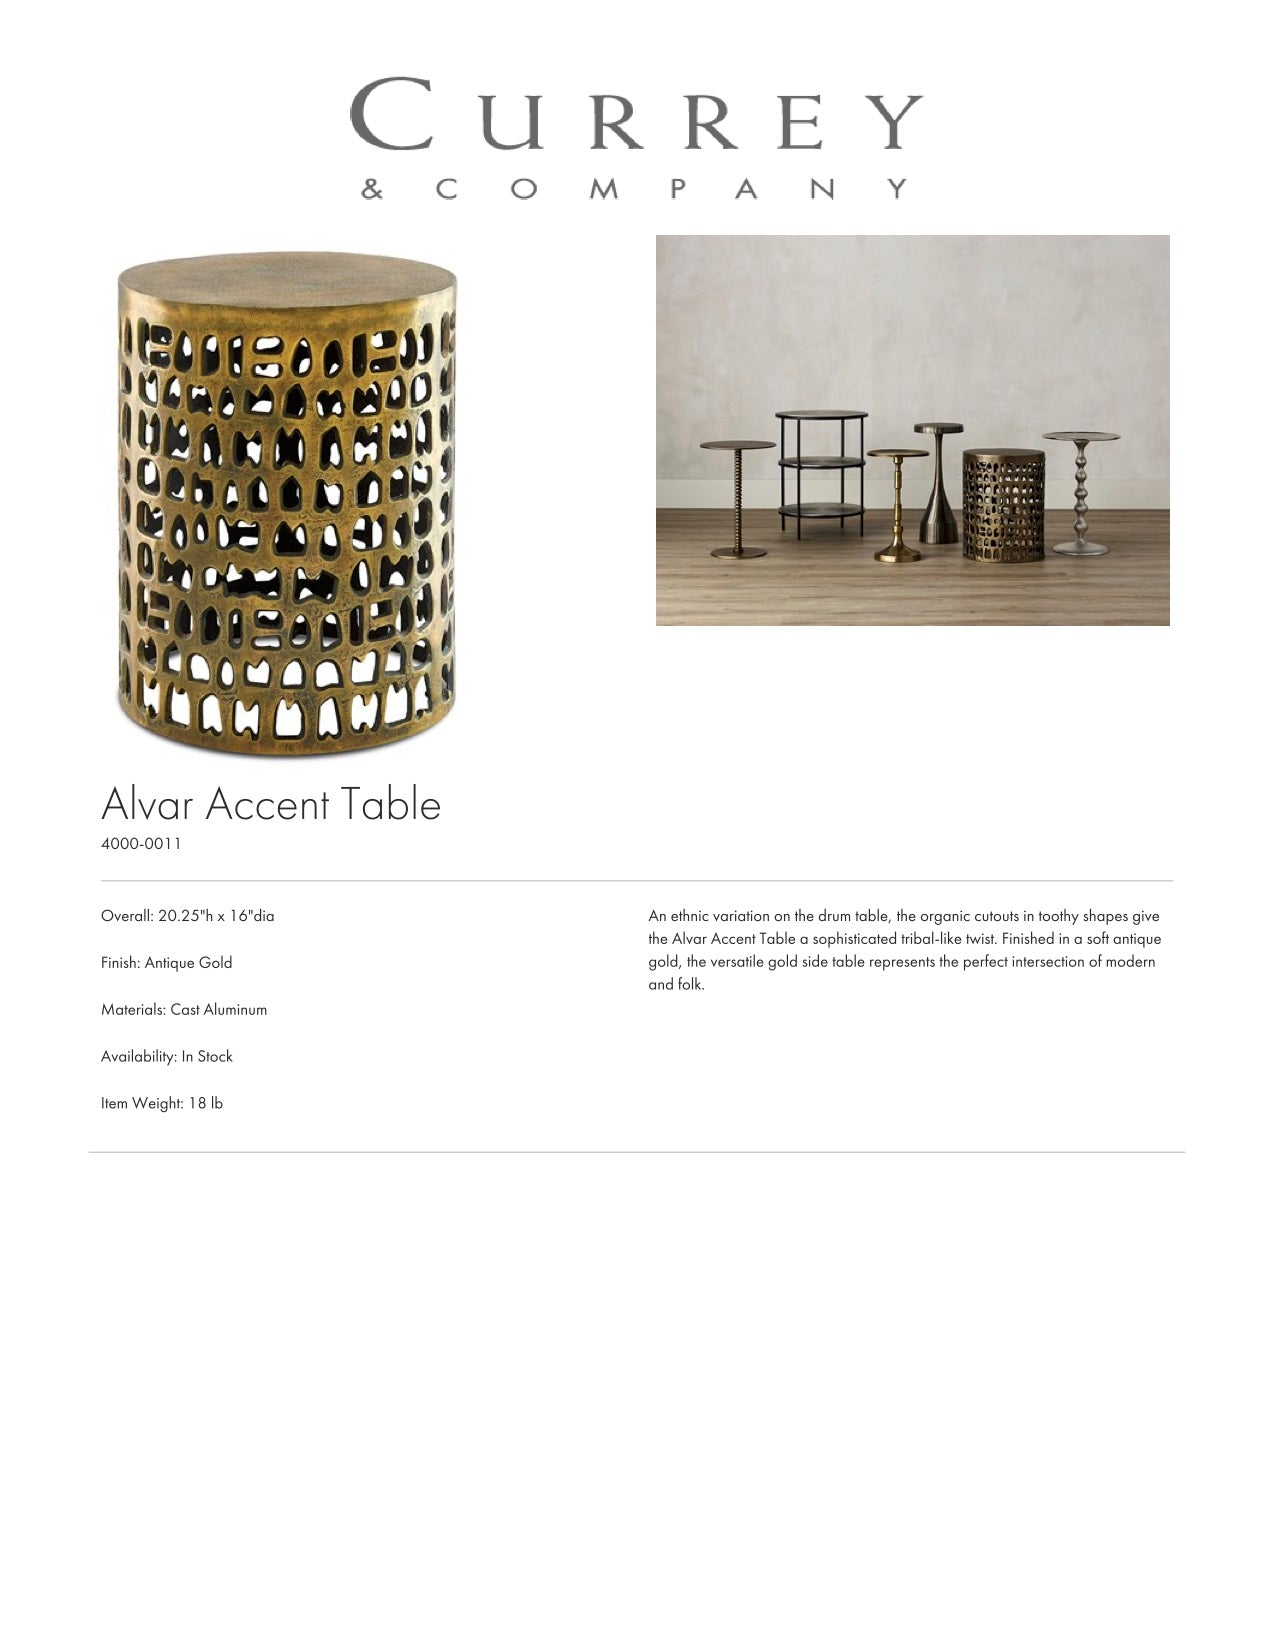 Currey & Company Alvar Accent Table Tearsheet